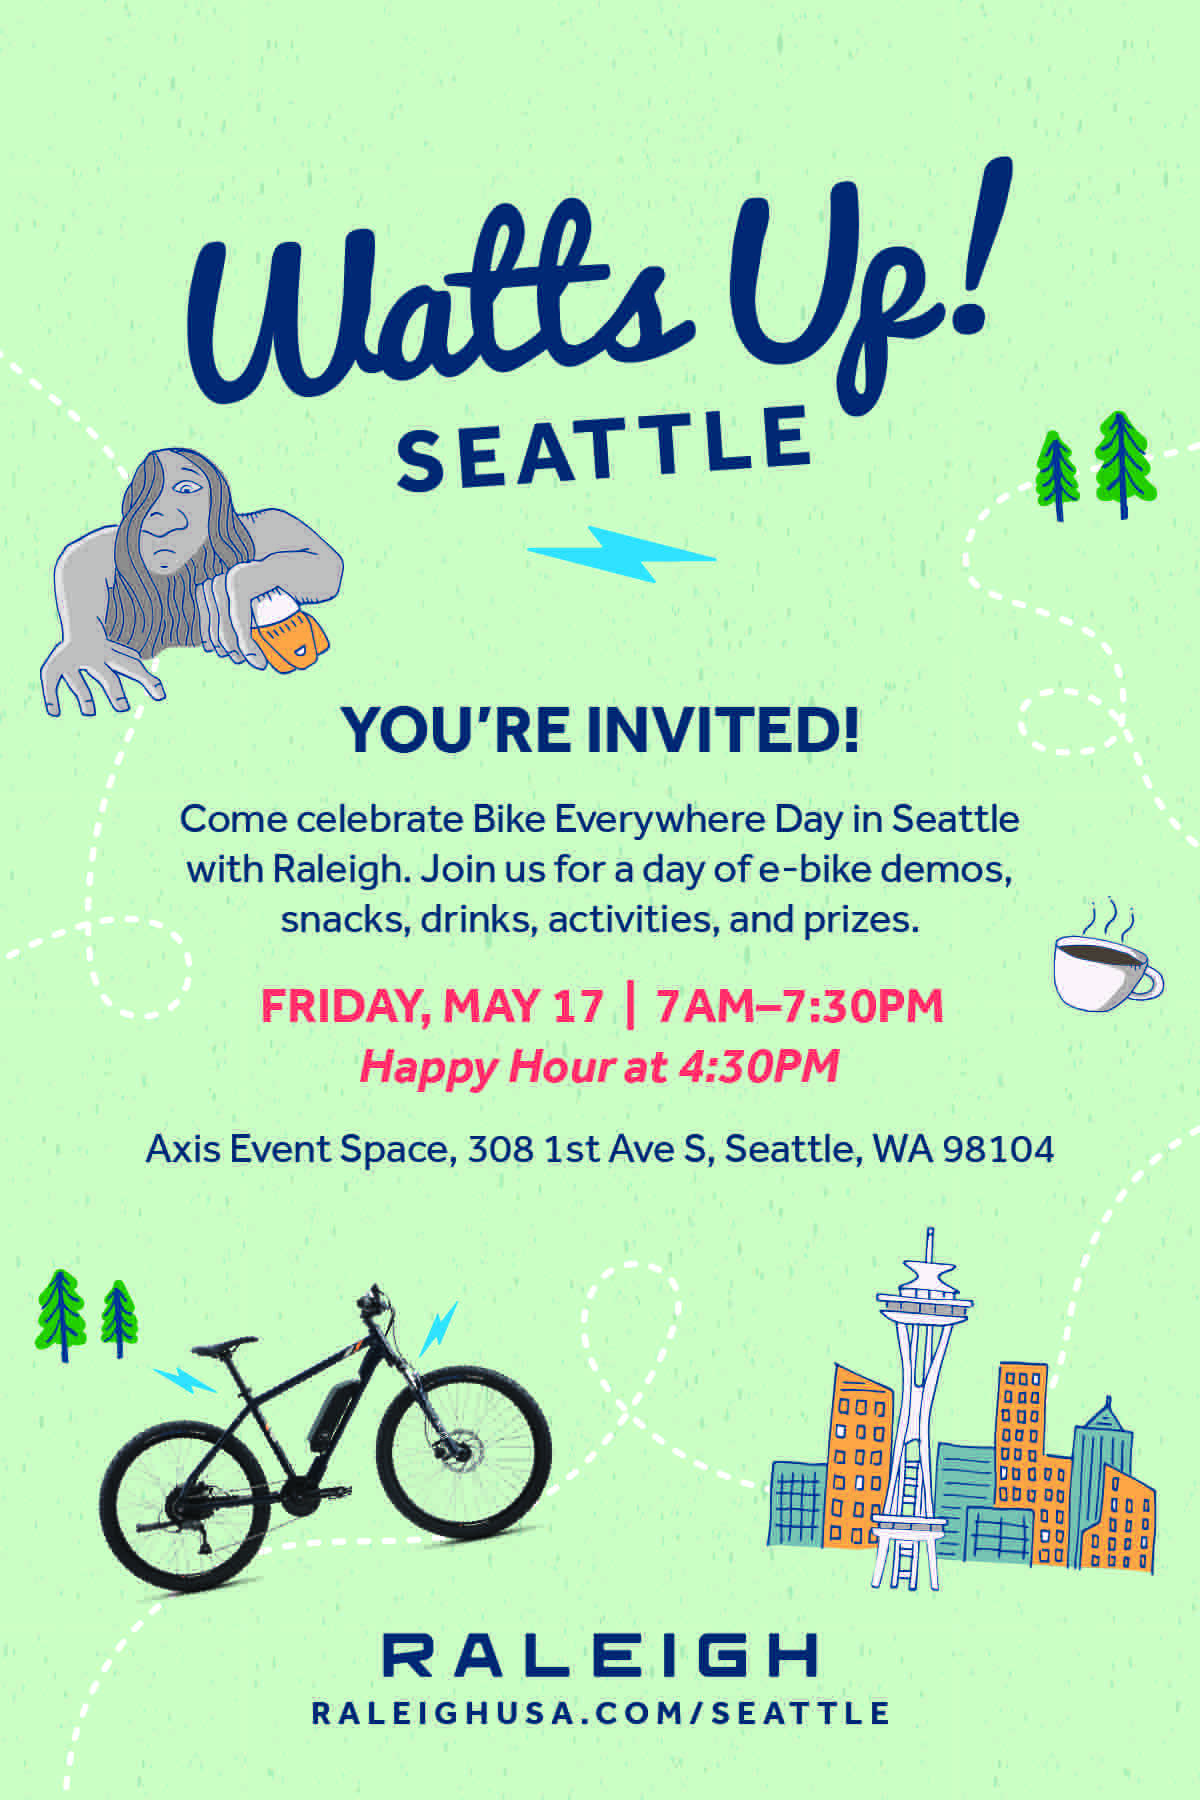 Raleigh Seattle Pop-Up Cafe and E-Bike Demo